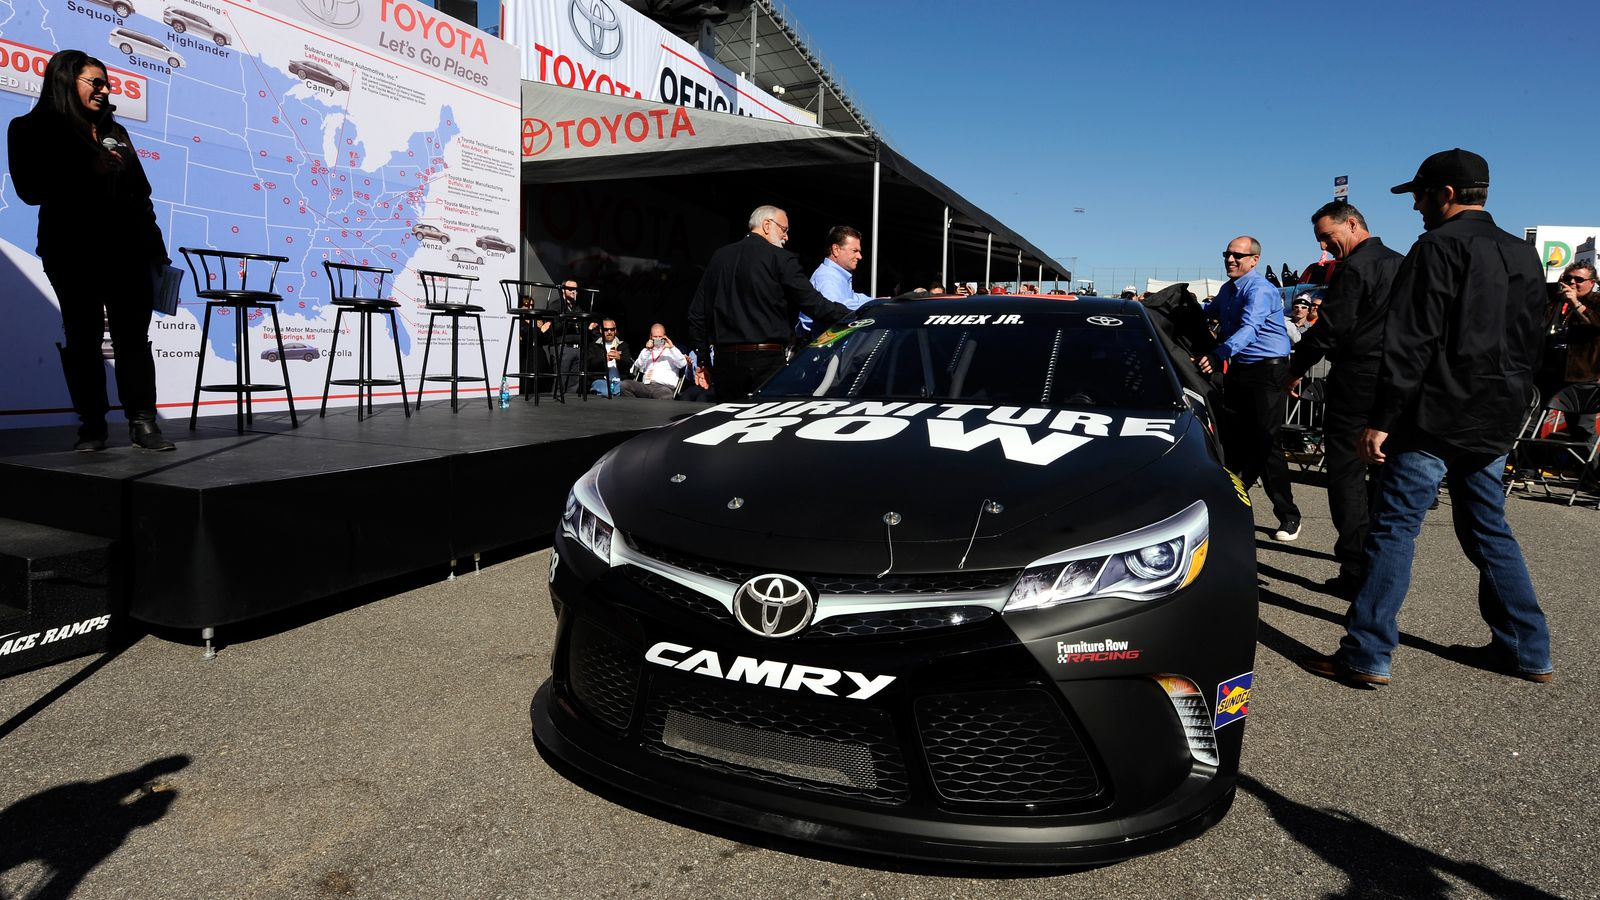 Furniture Row Racing Switches To Toyota For 2016